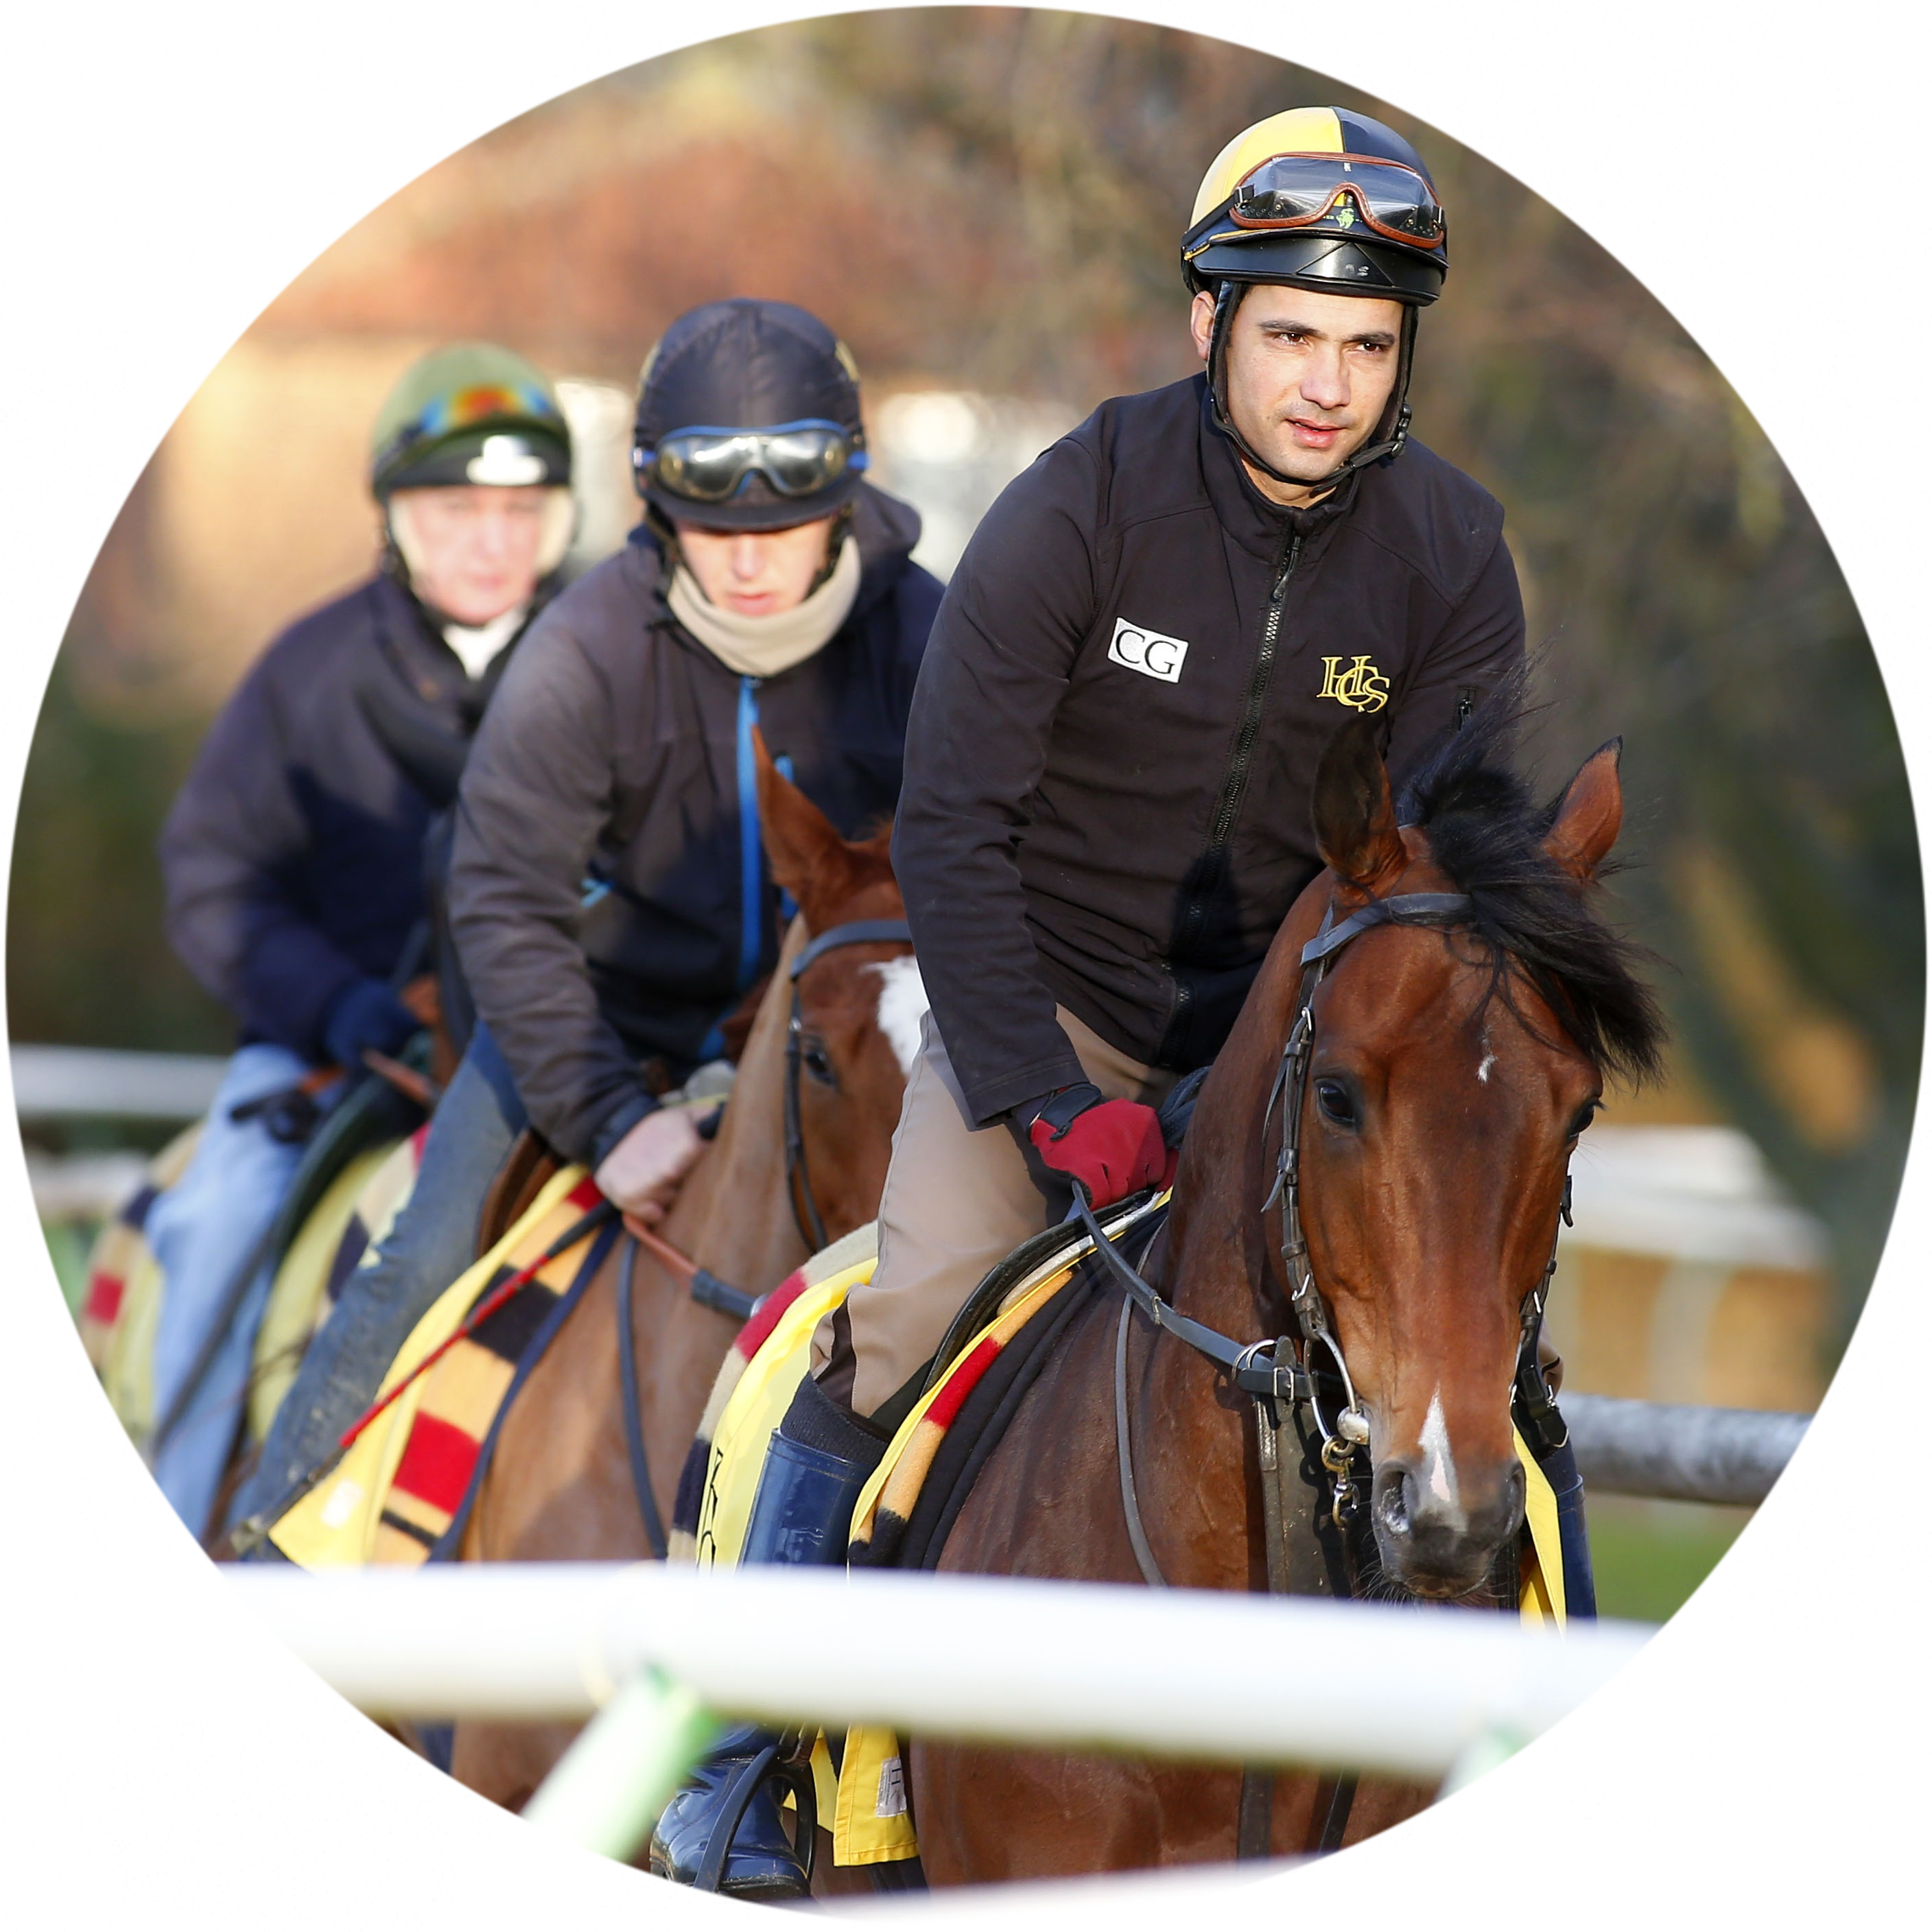 Racing grooms with British Grooms Association